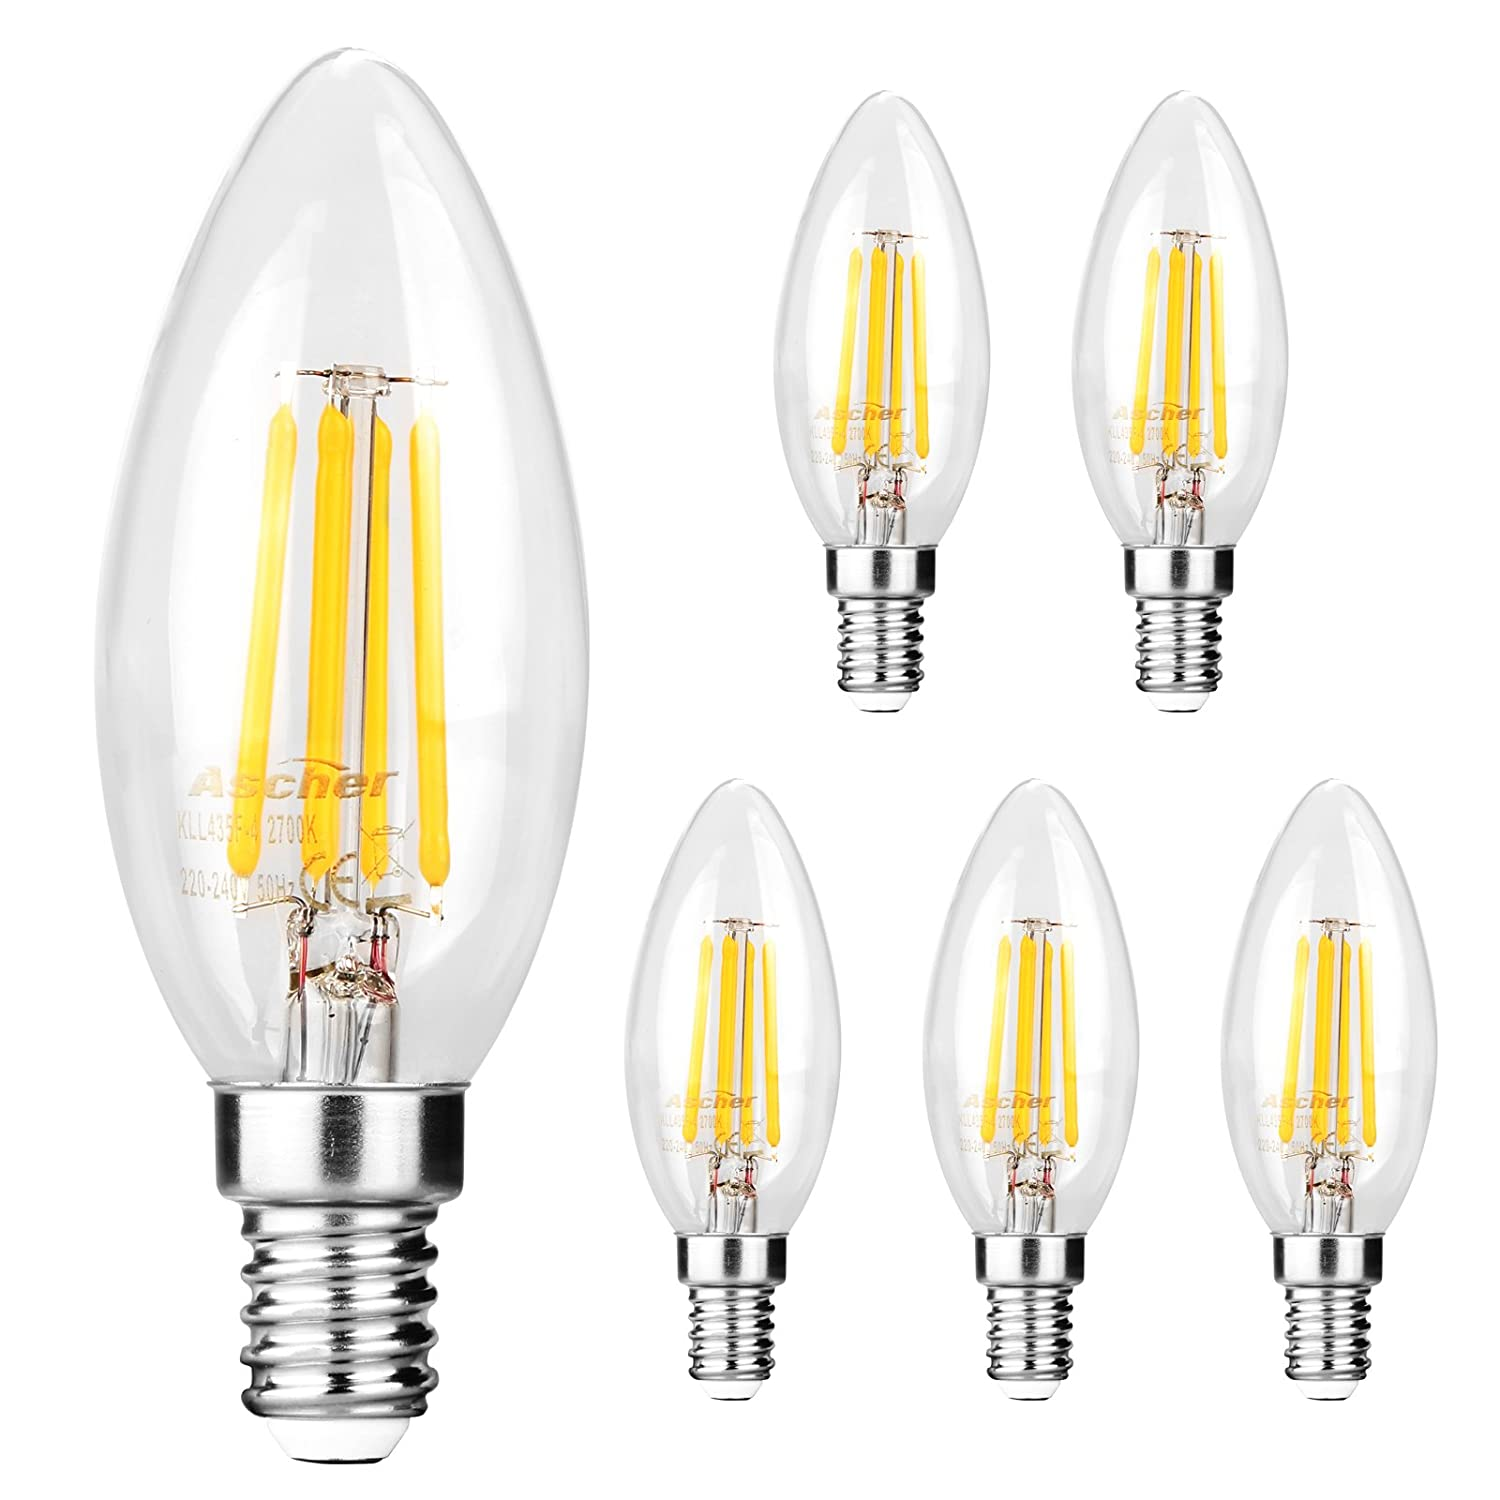 Led lampen amazon ascher 5er pack led lampe e14 retrofit classic led birne als kolbenlampe klar parisarafo Choice Image